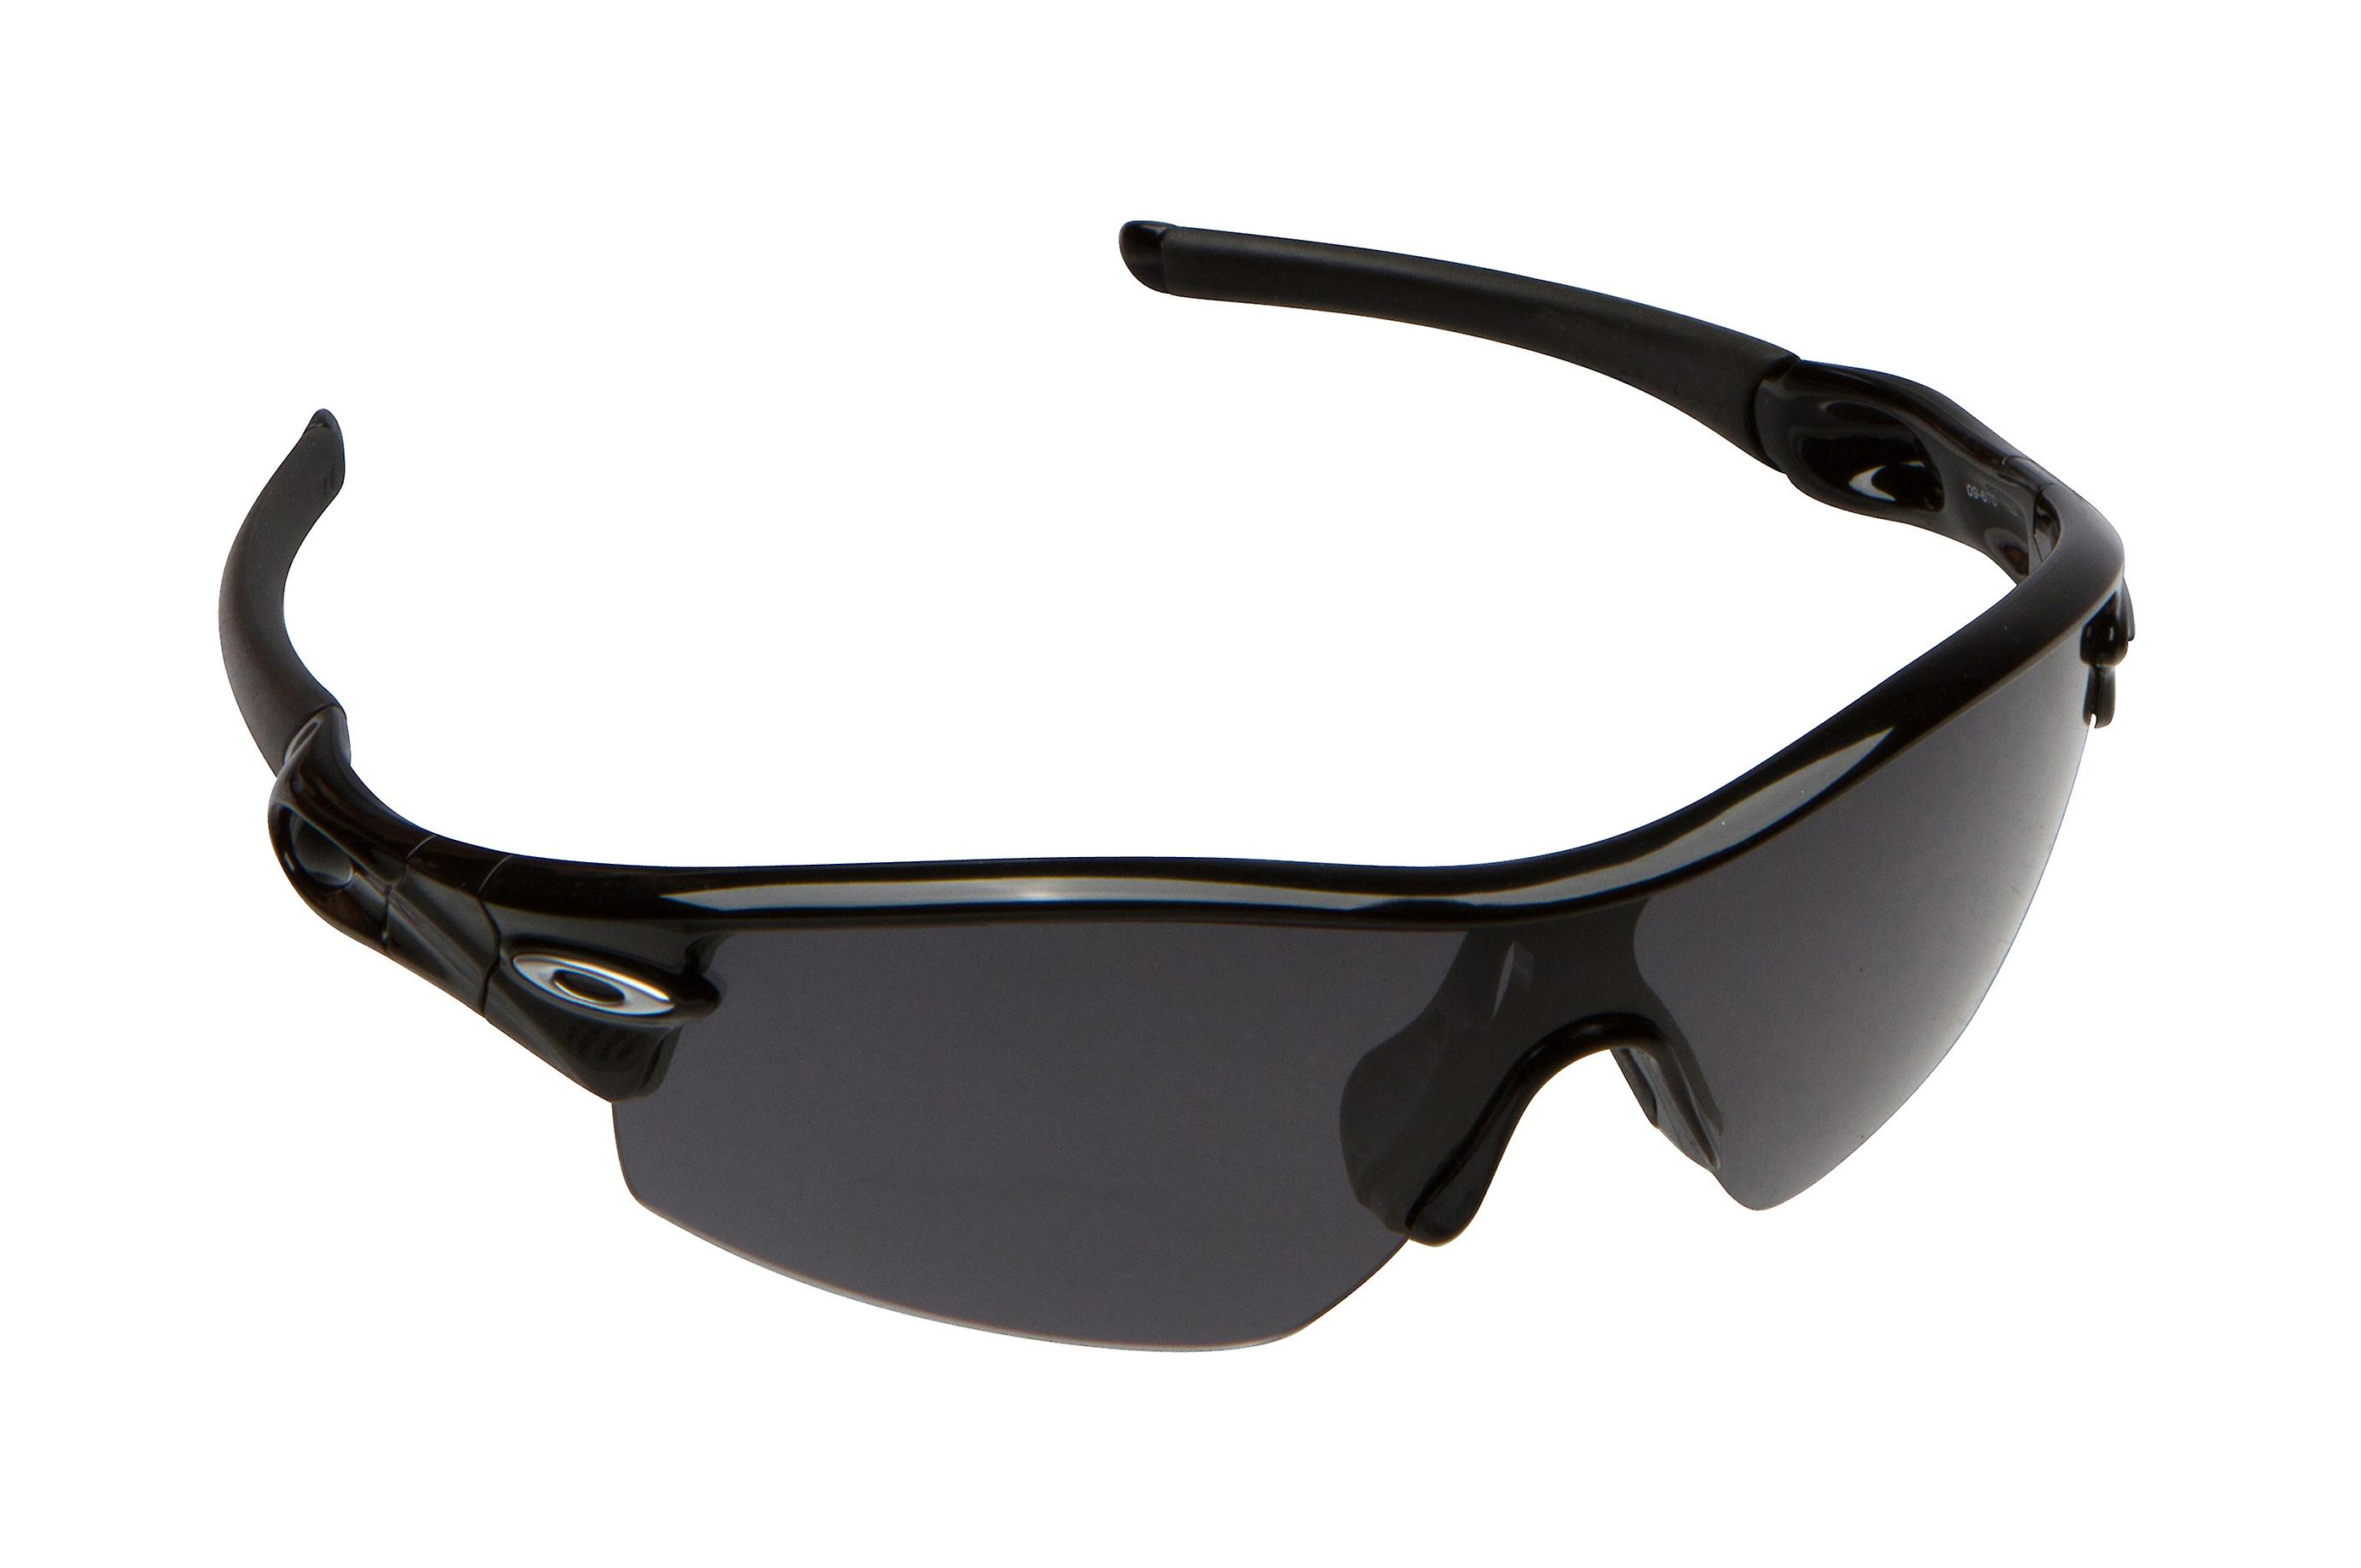 fed49dfc76 RADAR PITCH Replacement Lenses Polarized Black by SEEK fits OAKLEY  Sunglasses